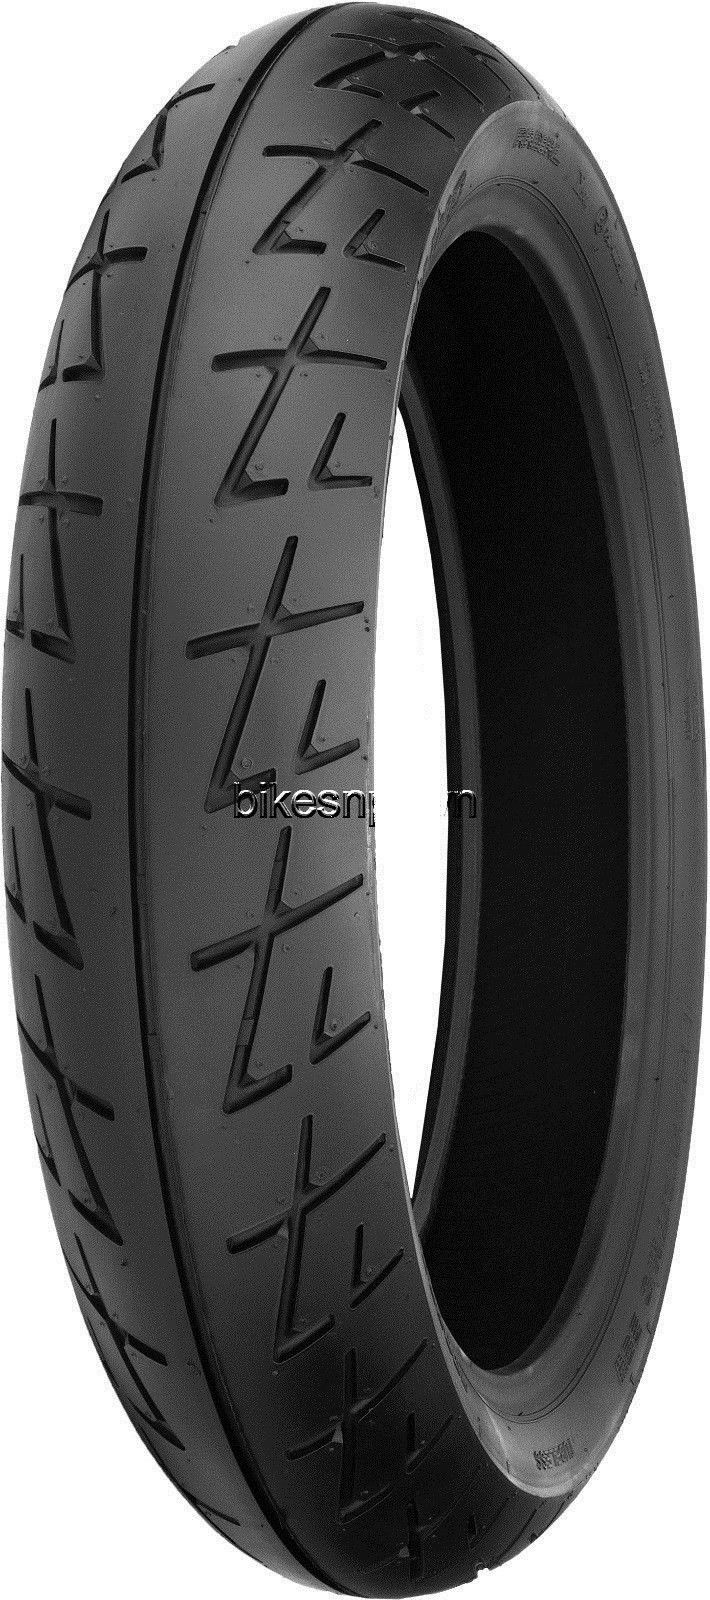 New Shinko 009 Raven Radial 120/60ZR17 Front Sportbike Motorcycle Tire